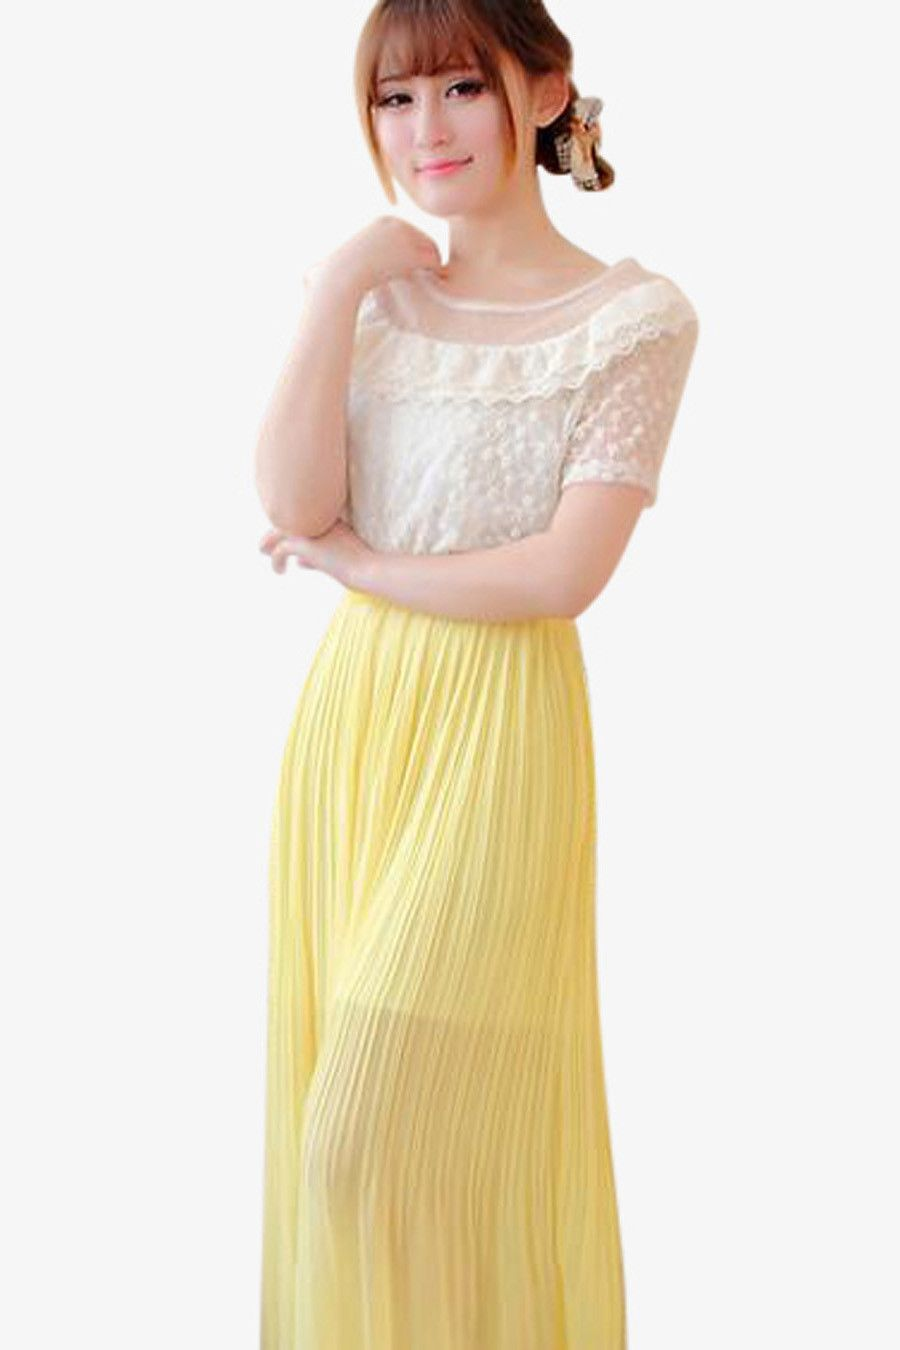 Lace bow white and yellow long dress discover kfashion jpop